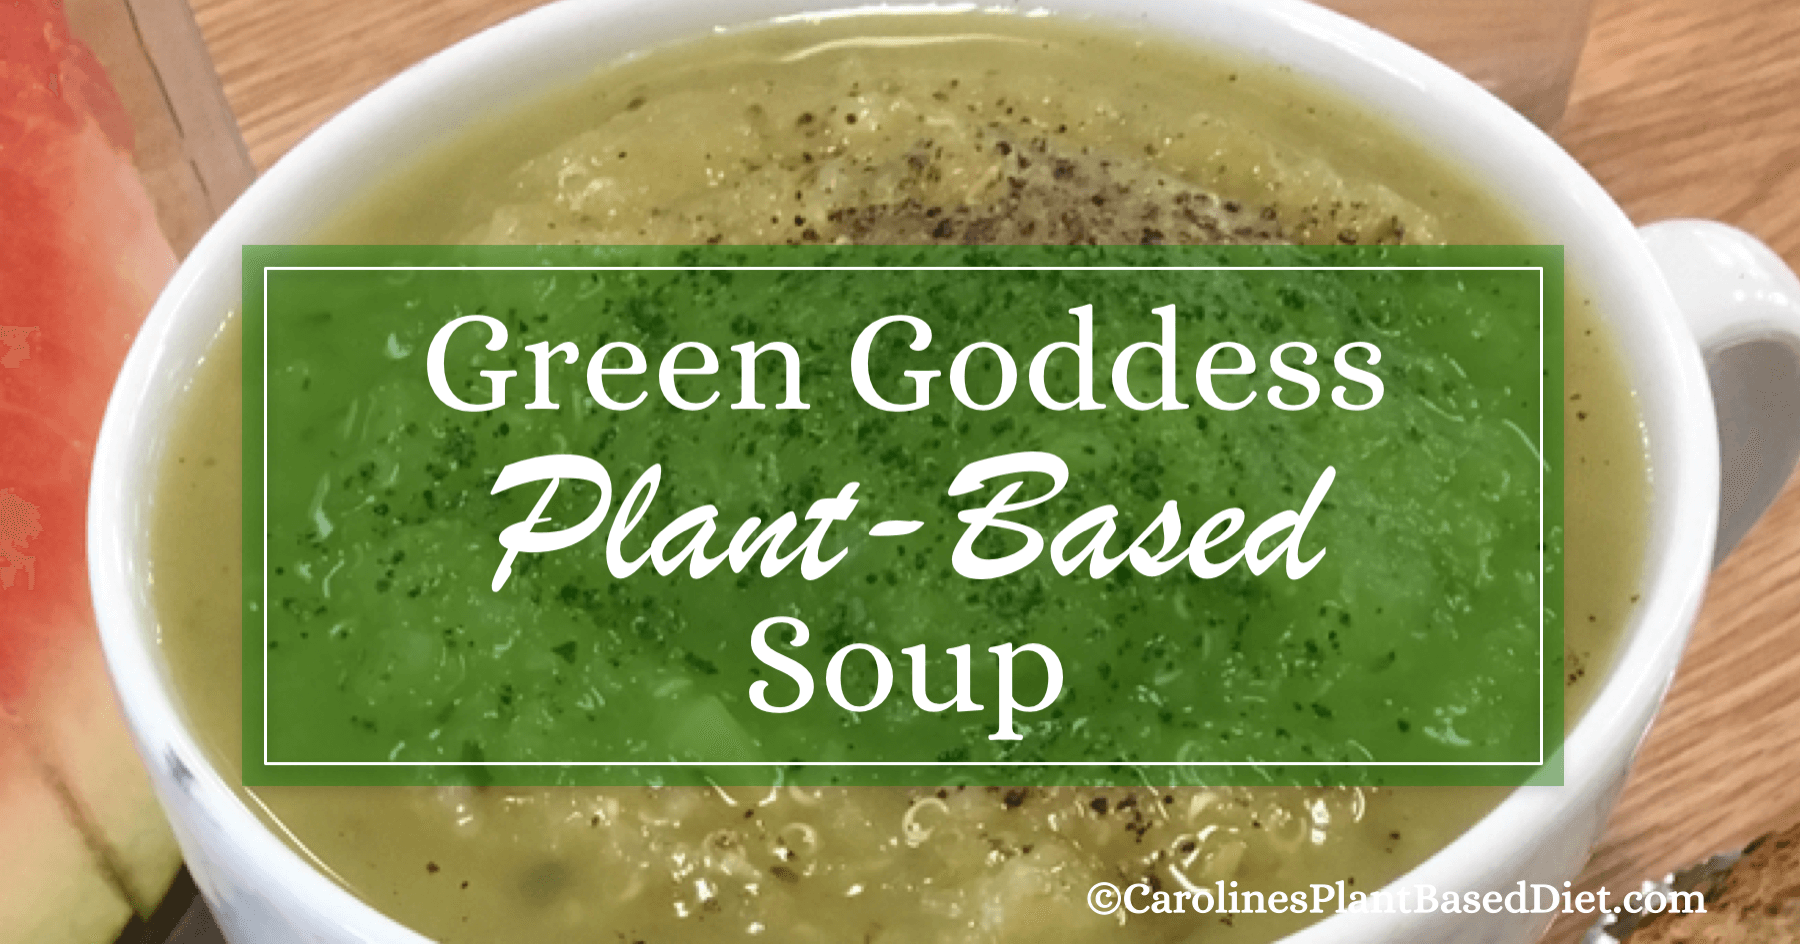 Plant-Based Green Goddess Soup